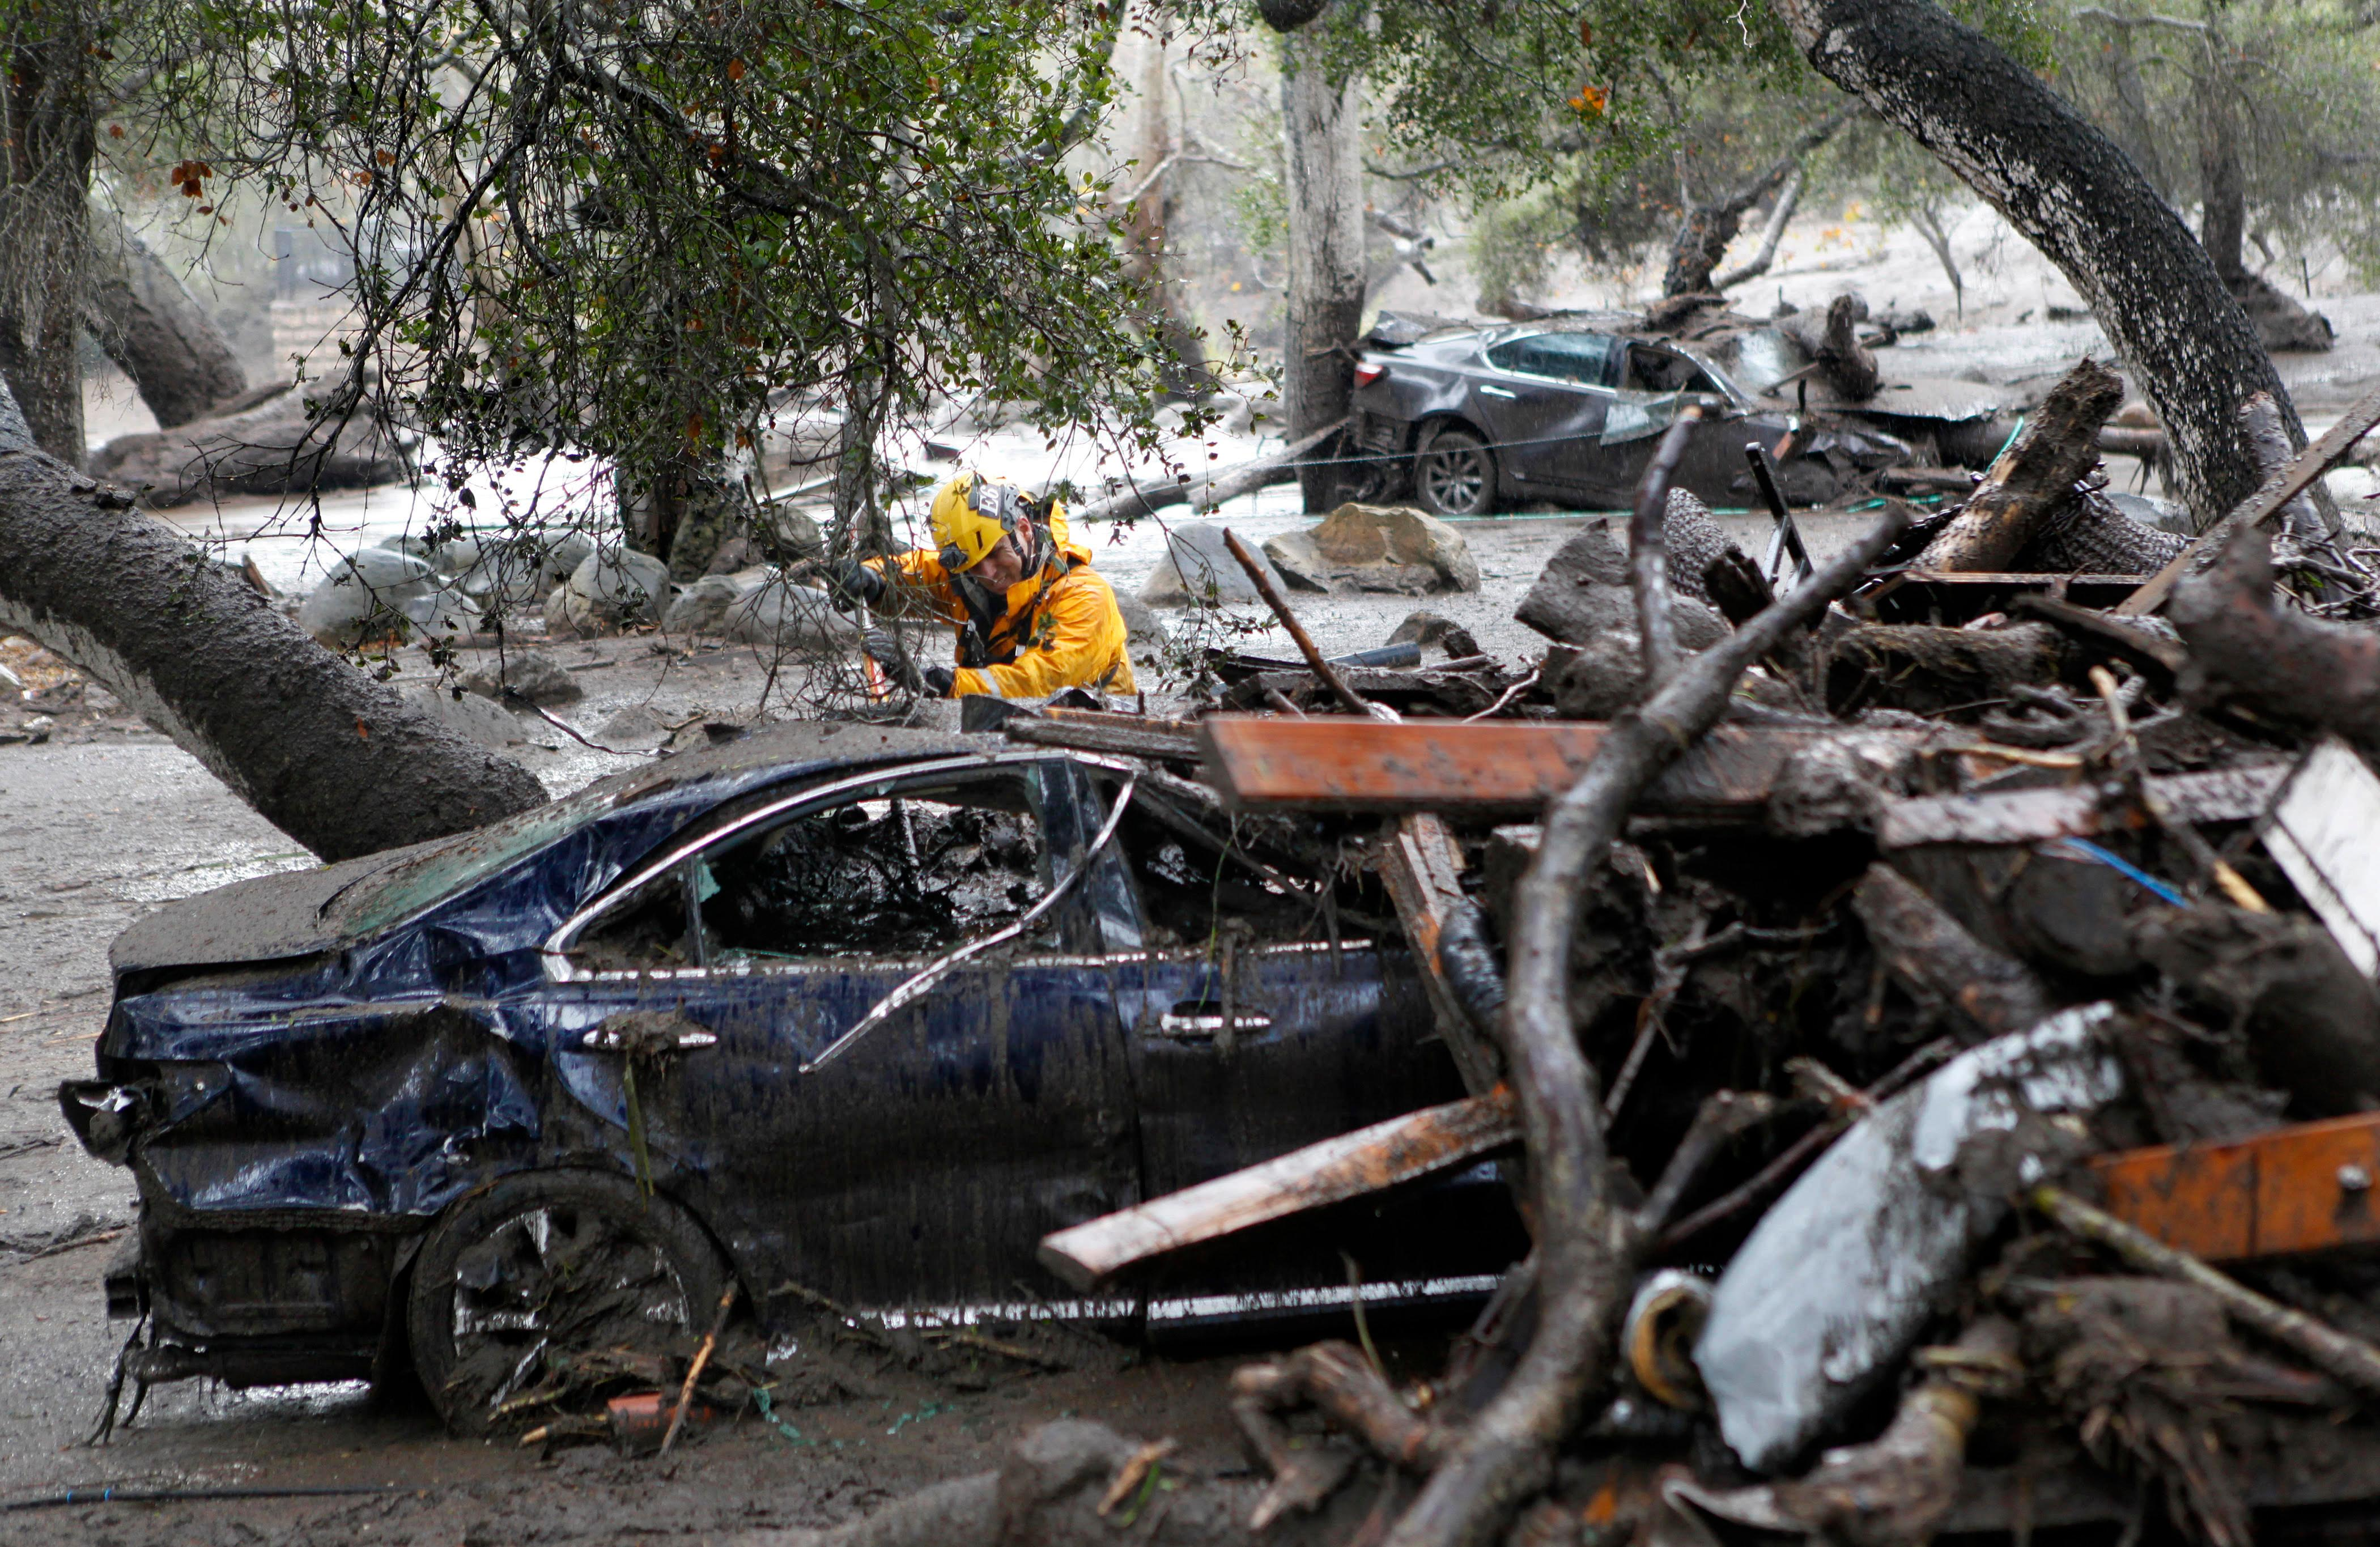 A member of the Long Beach Search and Rescue team looks for survivors in a car in Montecito, Calif., Tuesday, Jan. 9, 2018. Several homes were swept away before dawn Tuesday when mud and debris roared into neighborhoods in Montecito from hillsides stripped of vegetation during a recent wildfire. (AP Photo/Daniel Dreifuss)